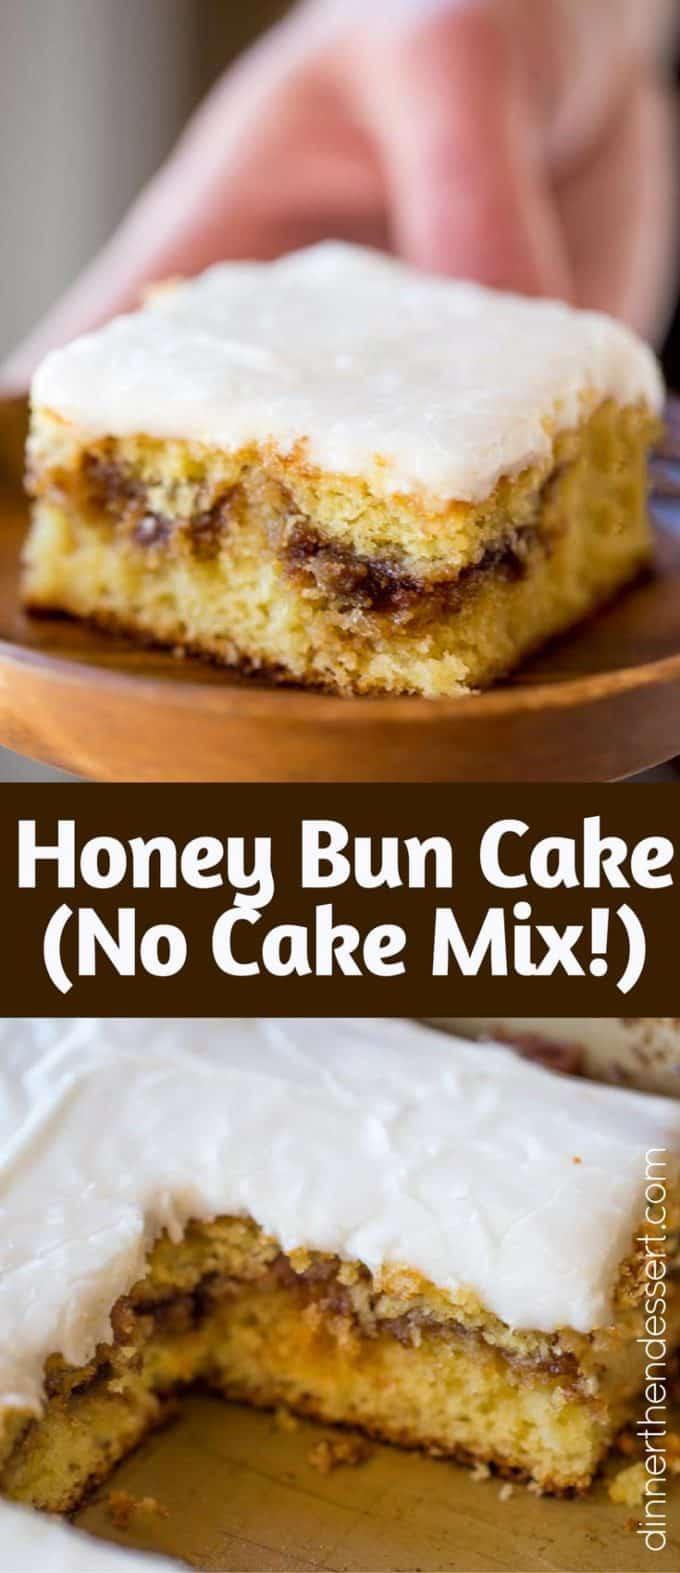 Honey Bun Cake Recipe Without Sour Cream